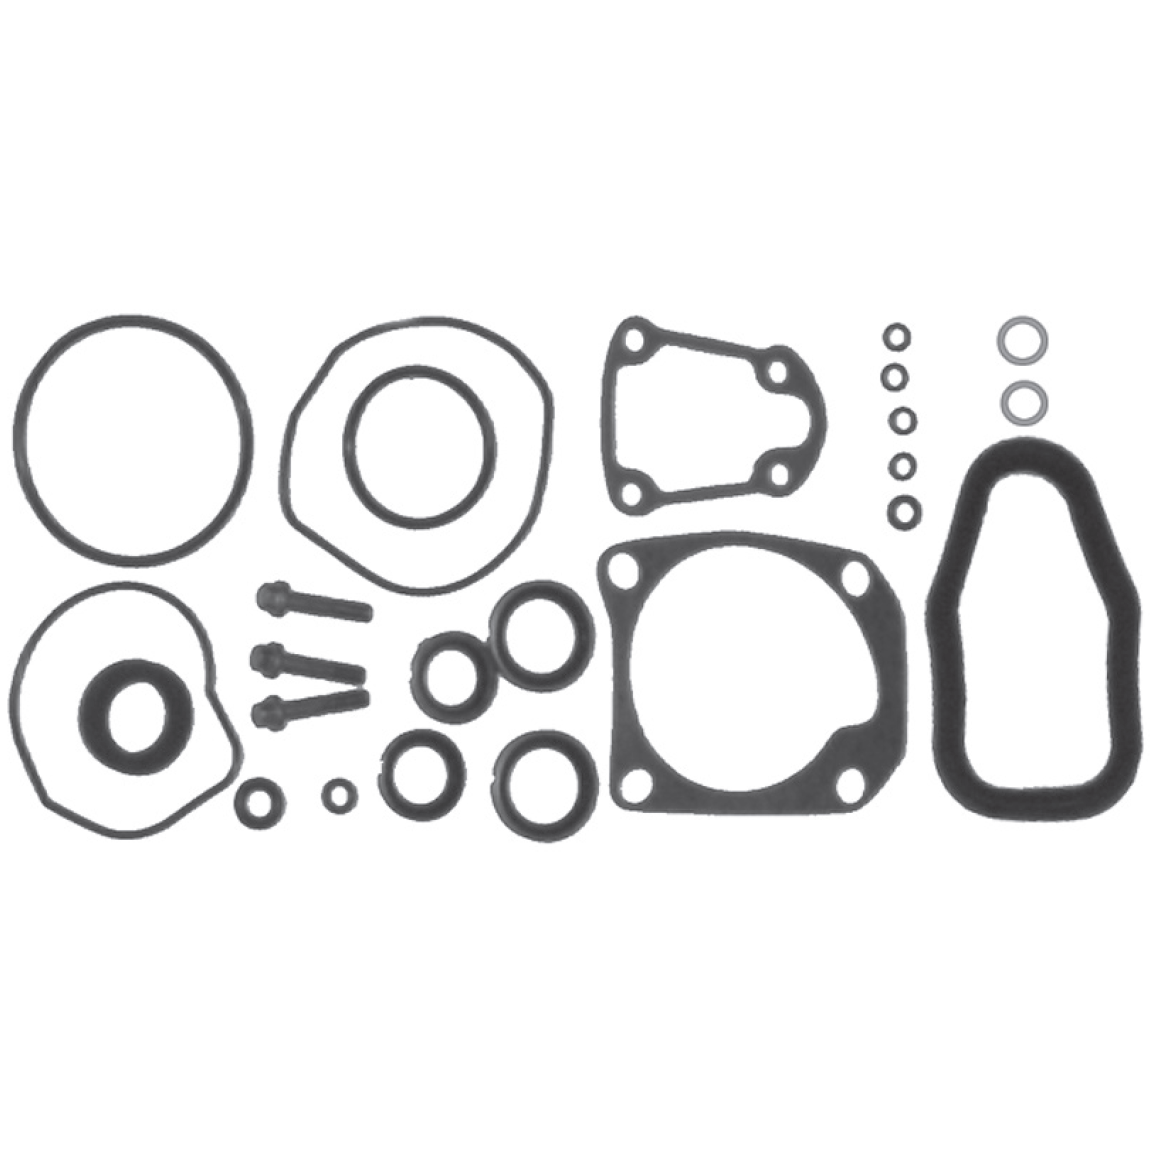 category-je-gearcase-seal-kits.png